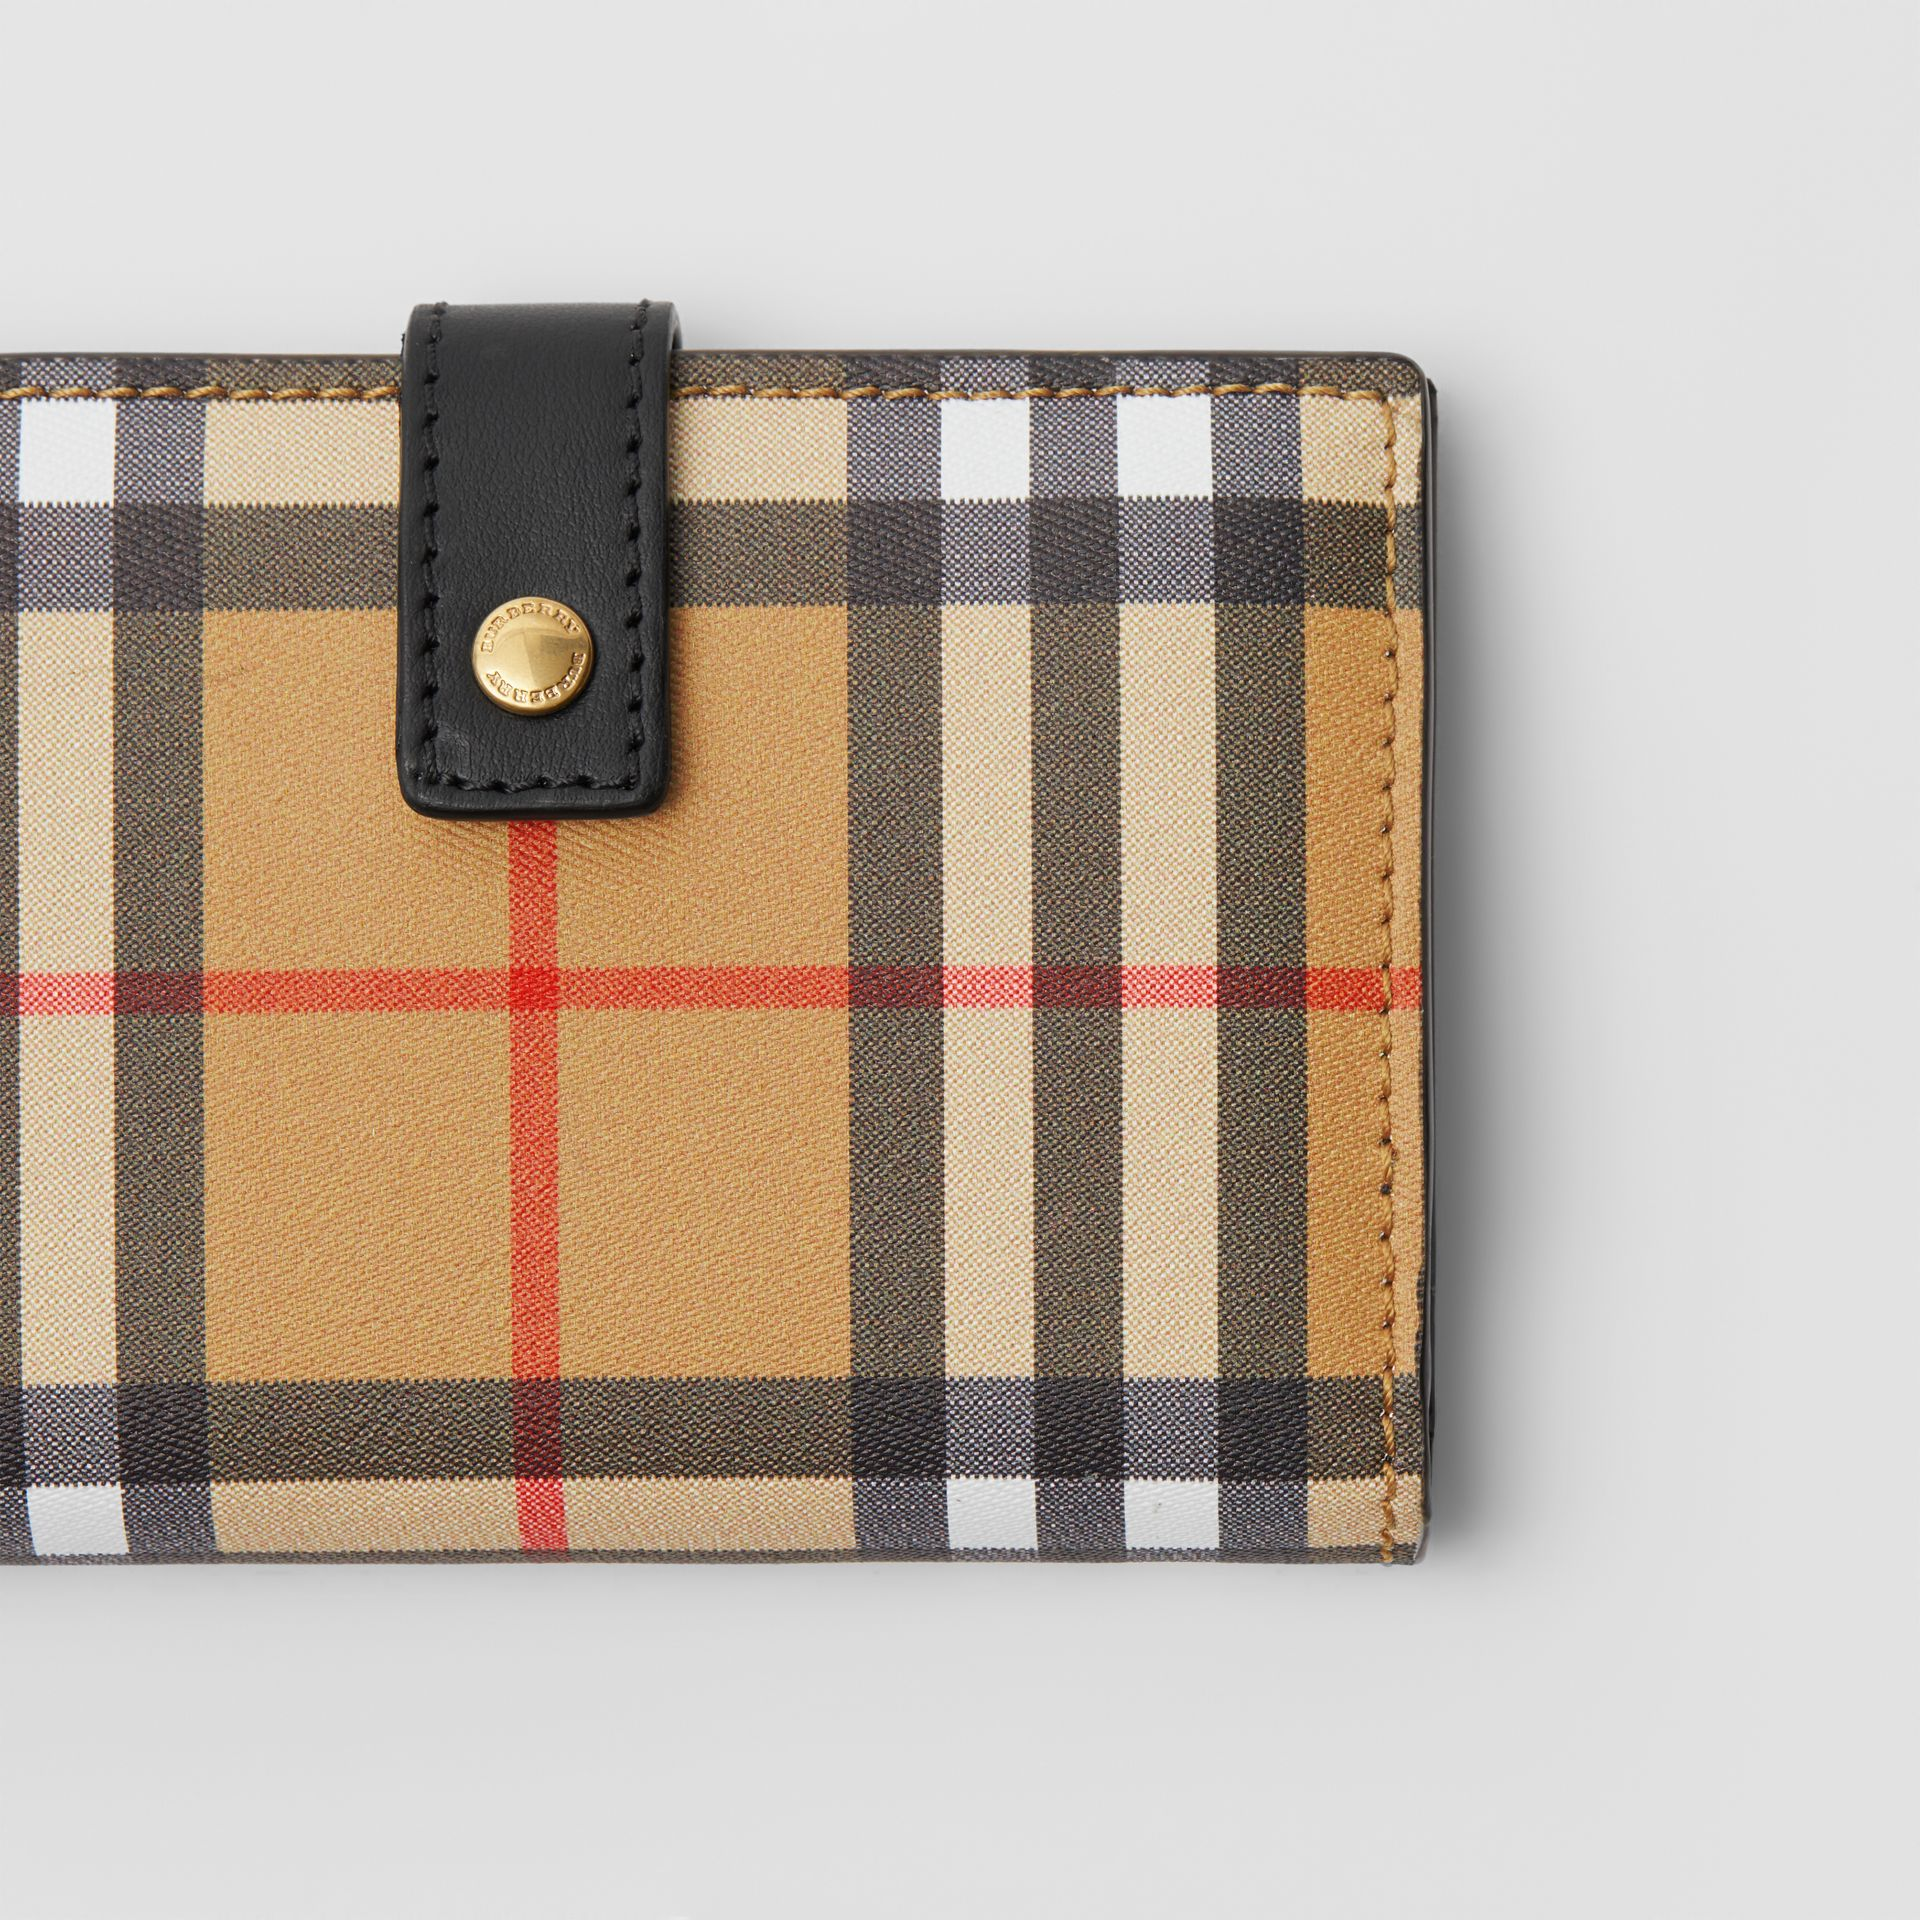 Vintage Check and Leather Folding Wallet in Black - Women | Burberry Canada - gallery image 1